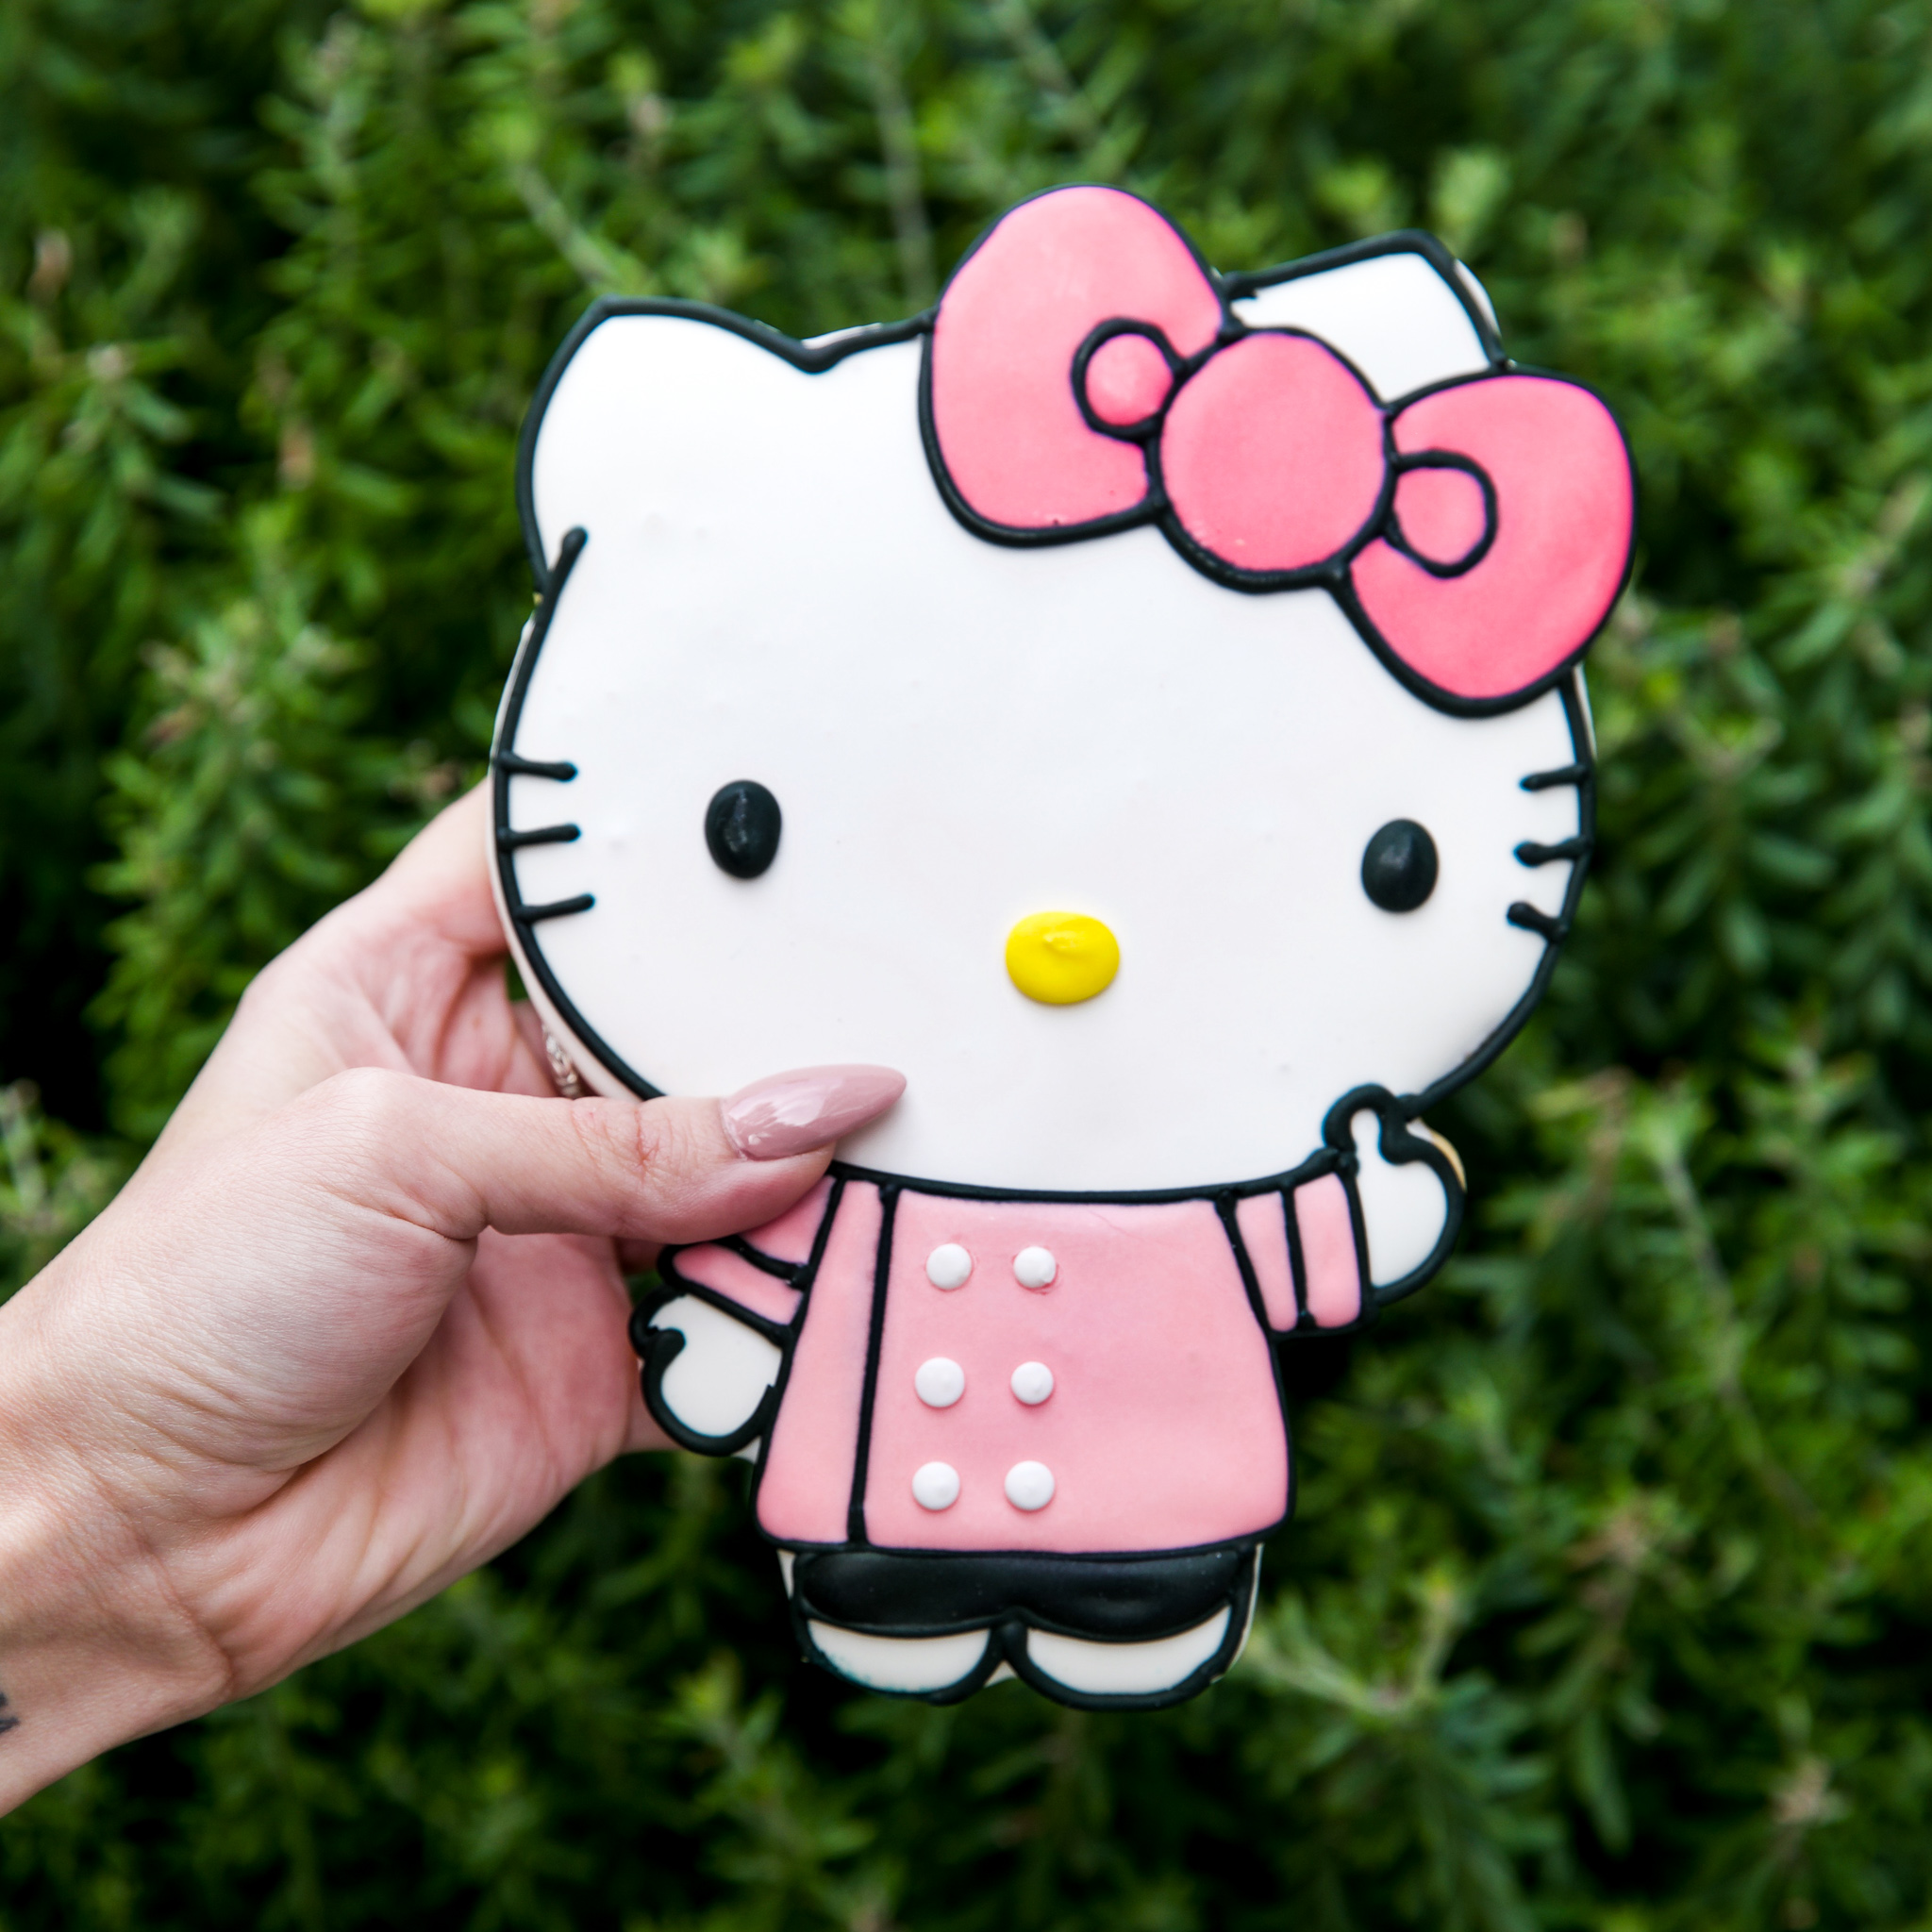 A cookie in the of Hello Kitty held in a hand